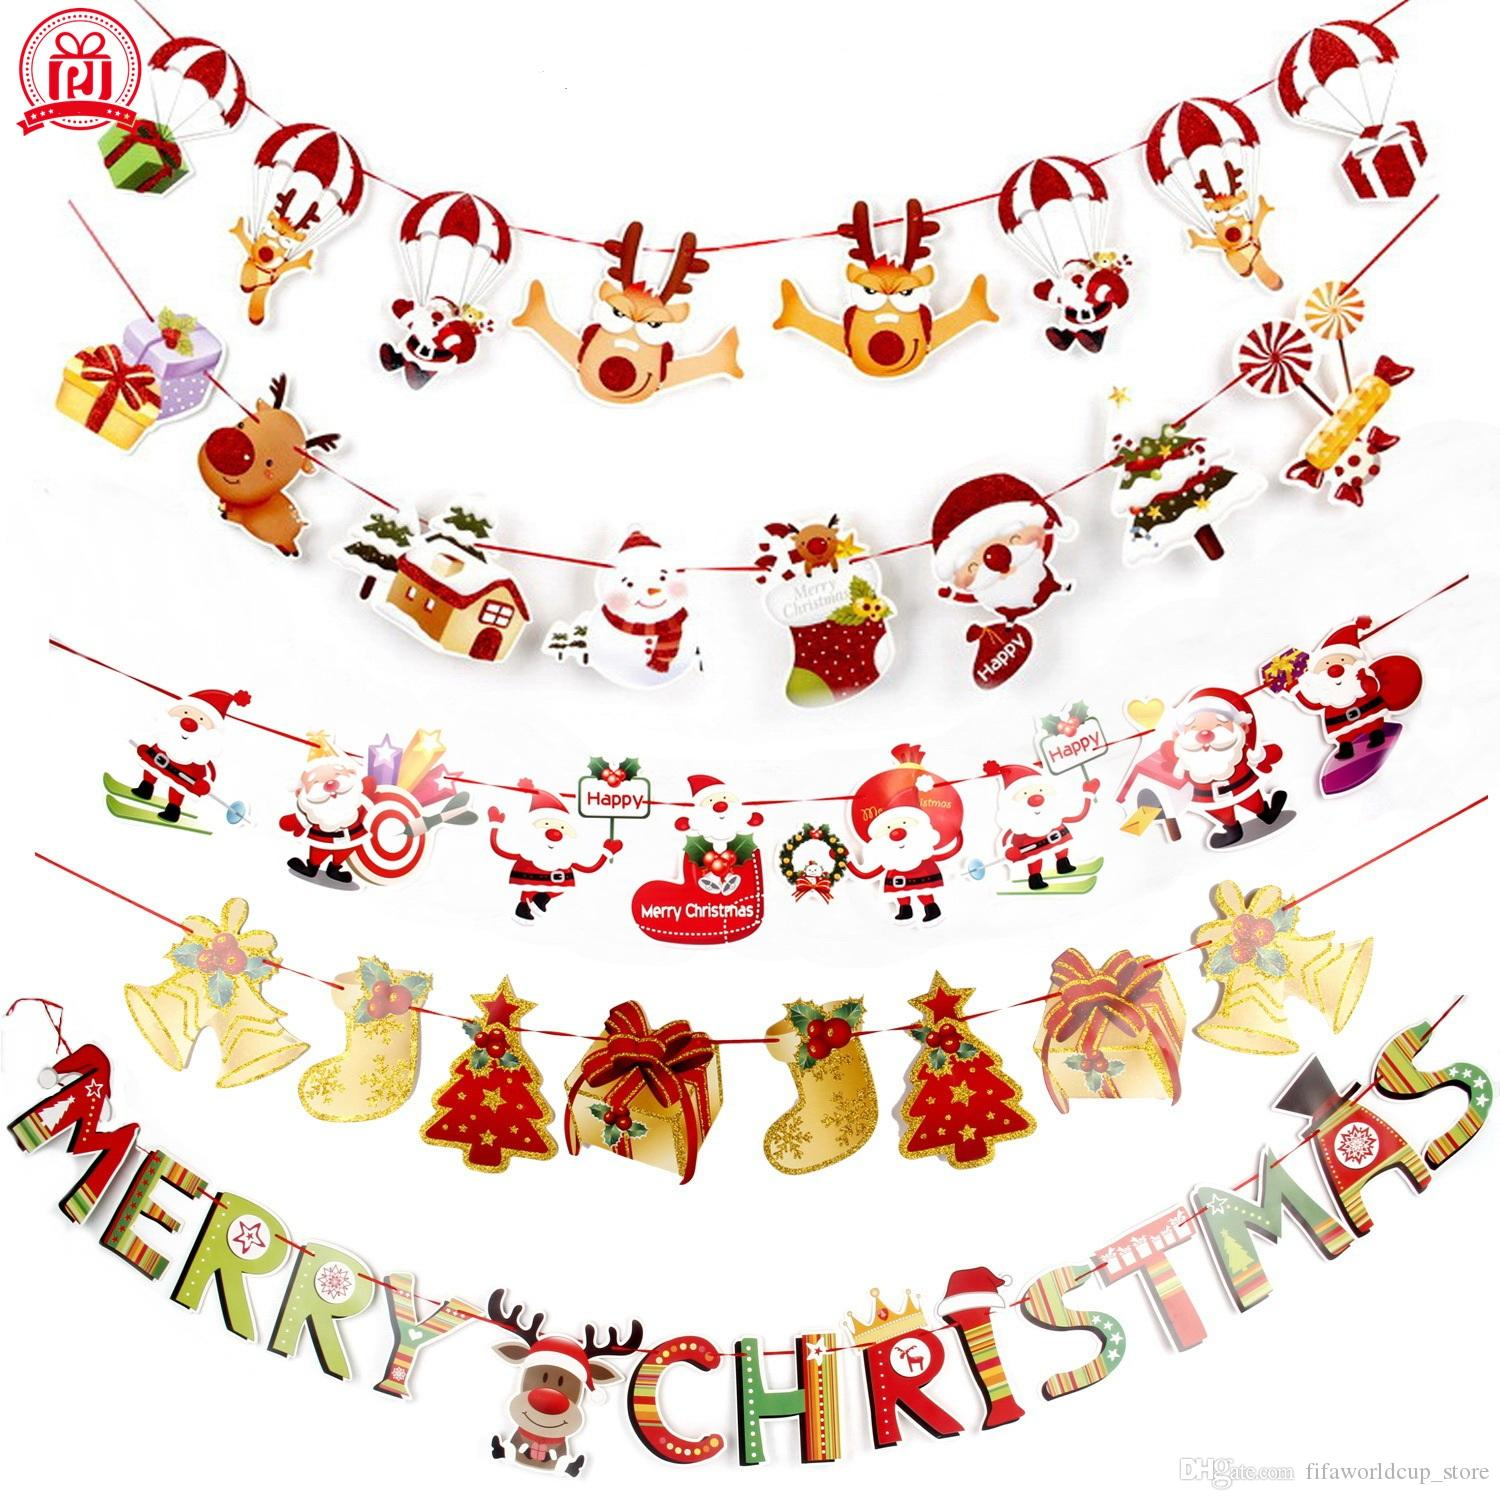 banners wall hangings christmas decorations clearance ornaments pendant xmas ornaments merry christmas decorations indoor for home christmas decorations - Christmas Decorations Clearance Online